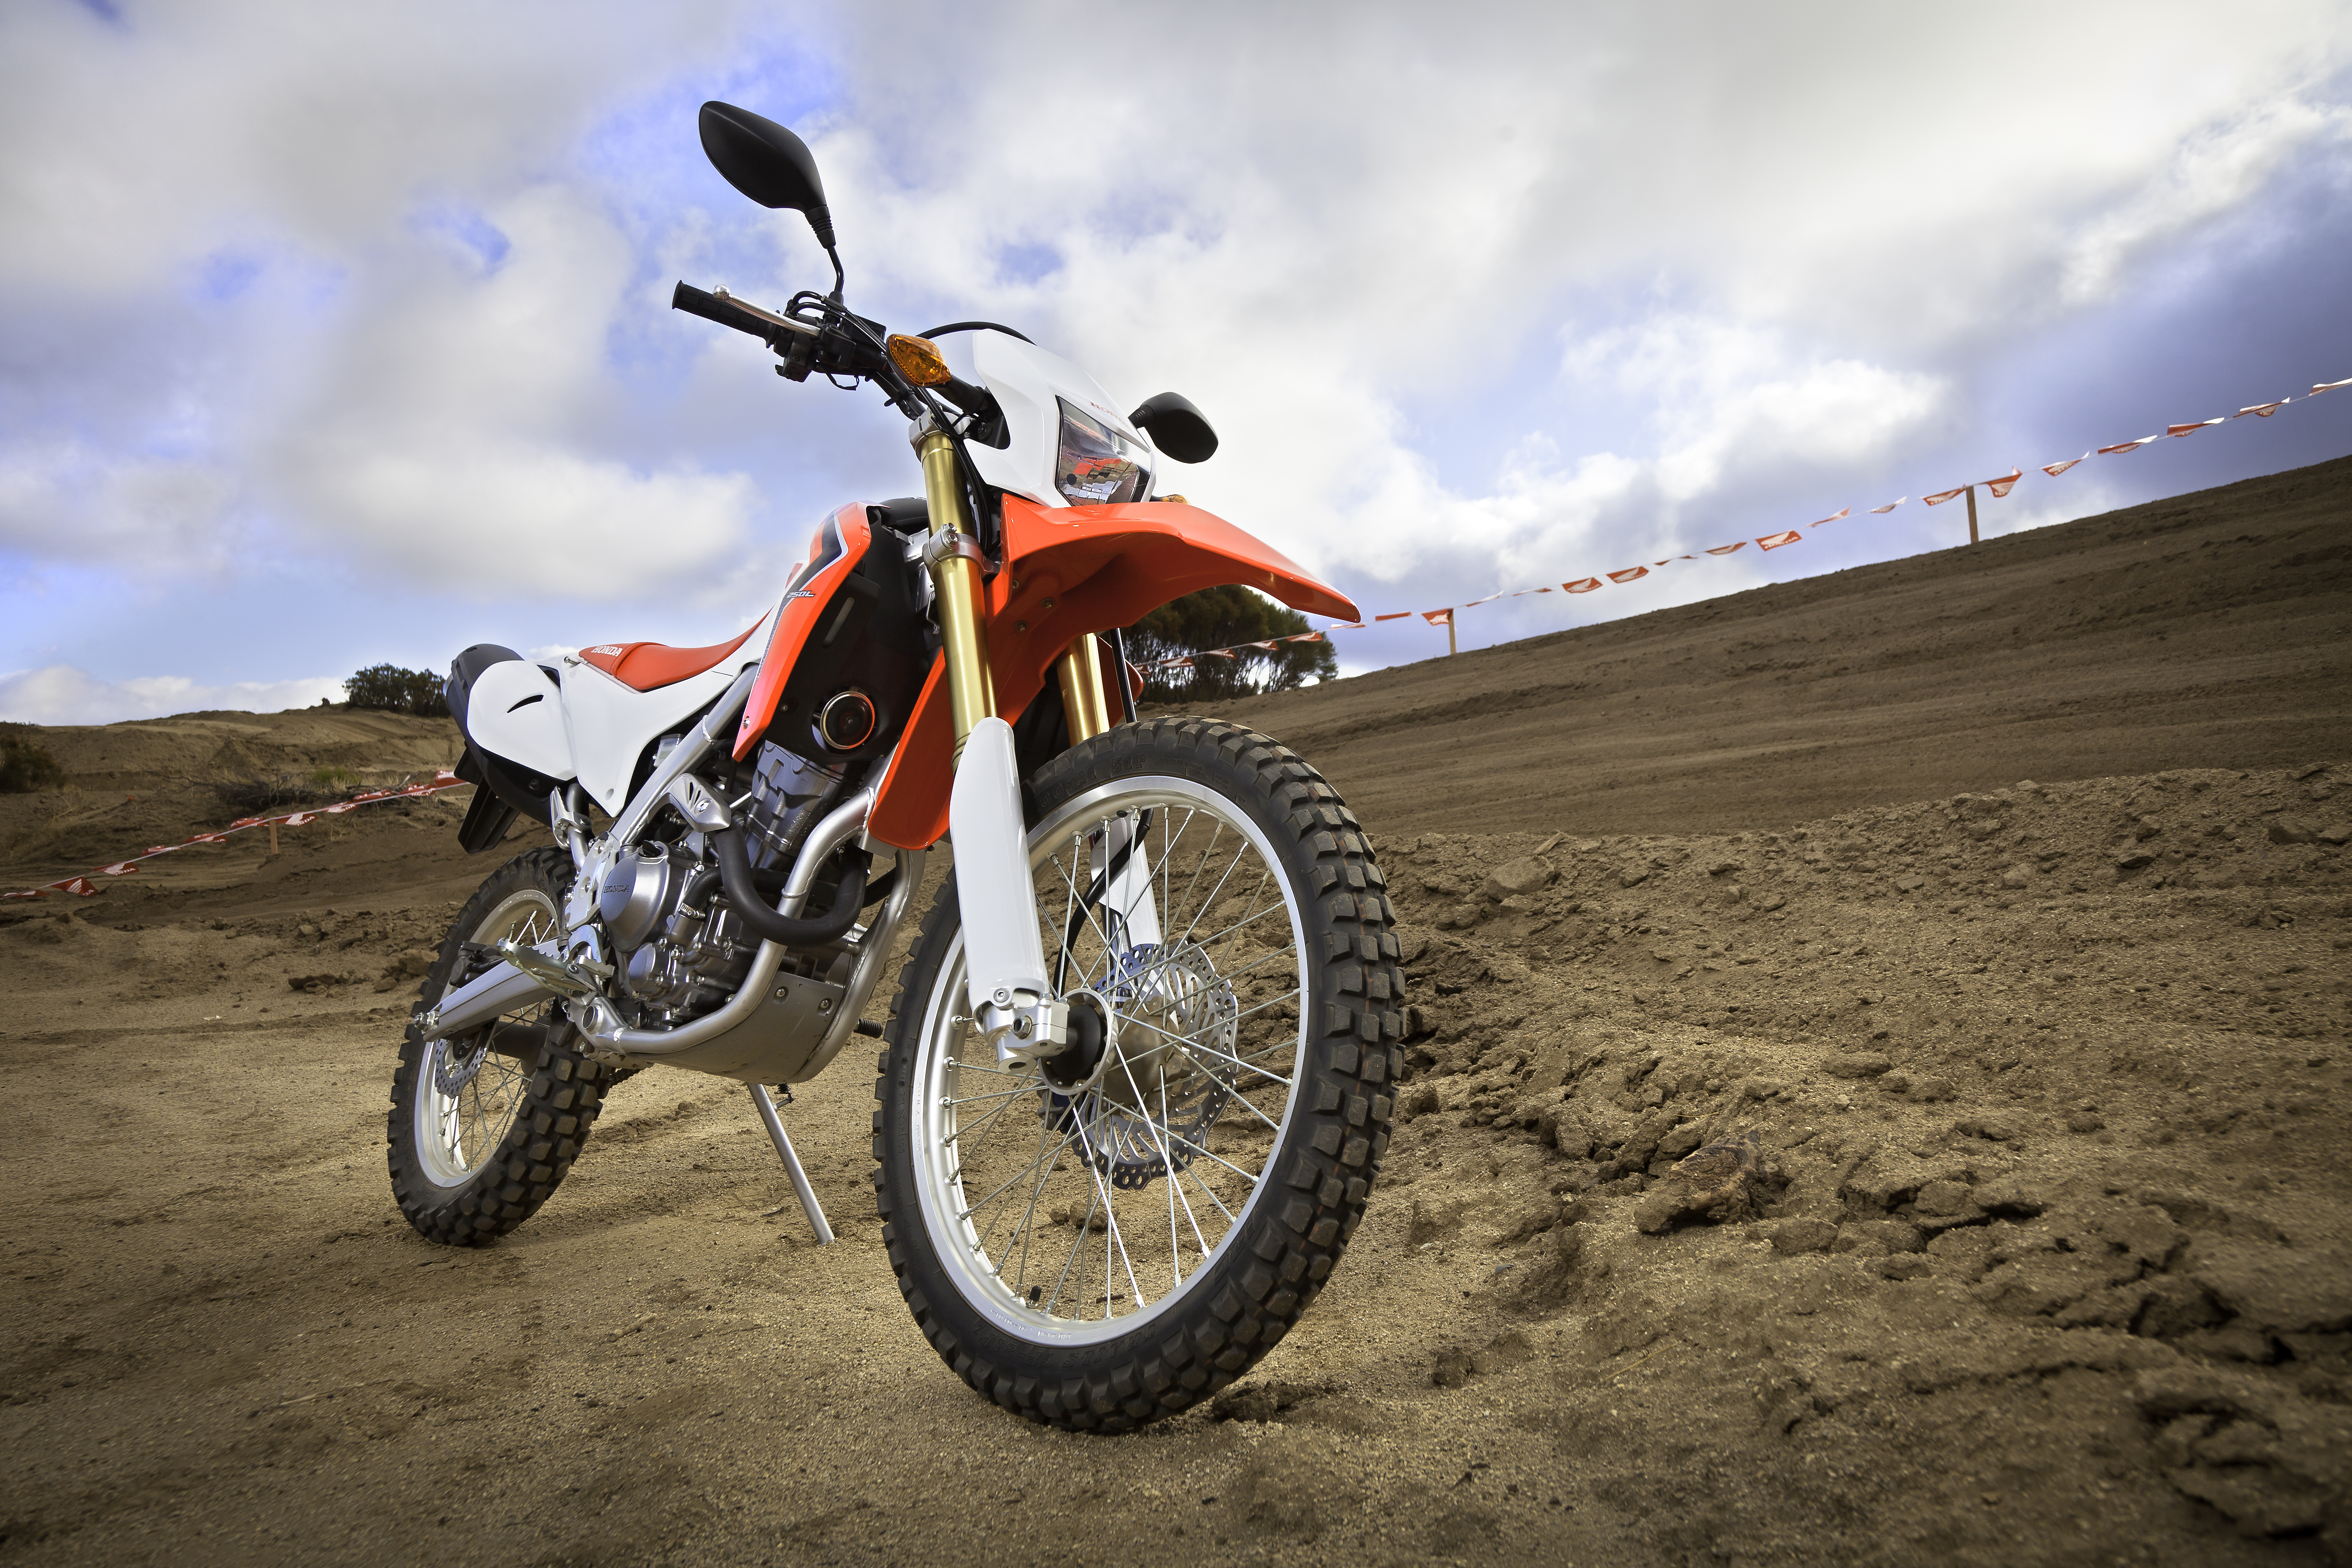 2013 crf250l submited images